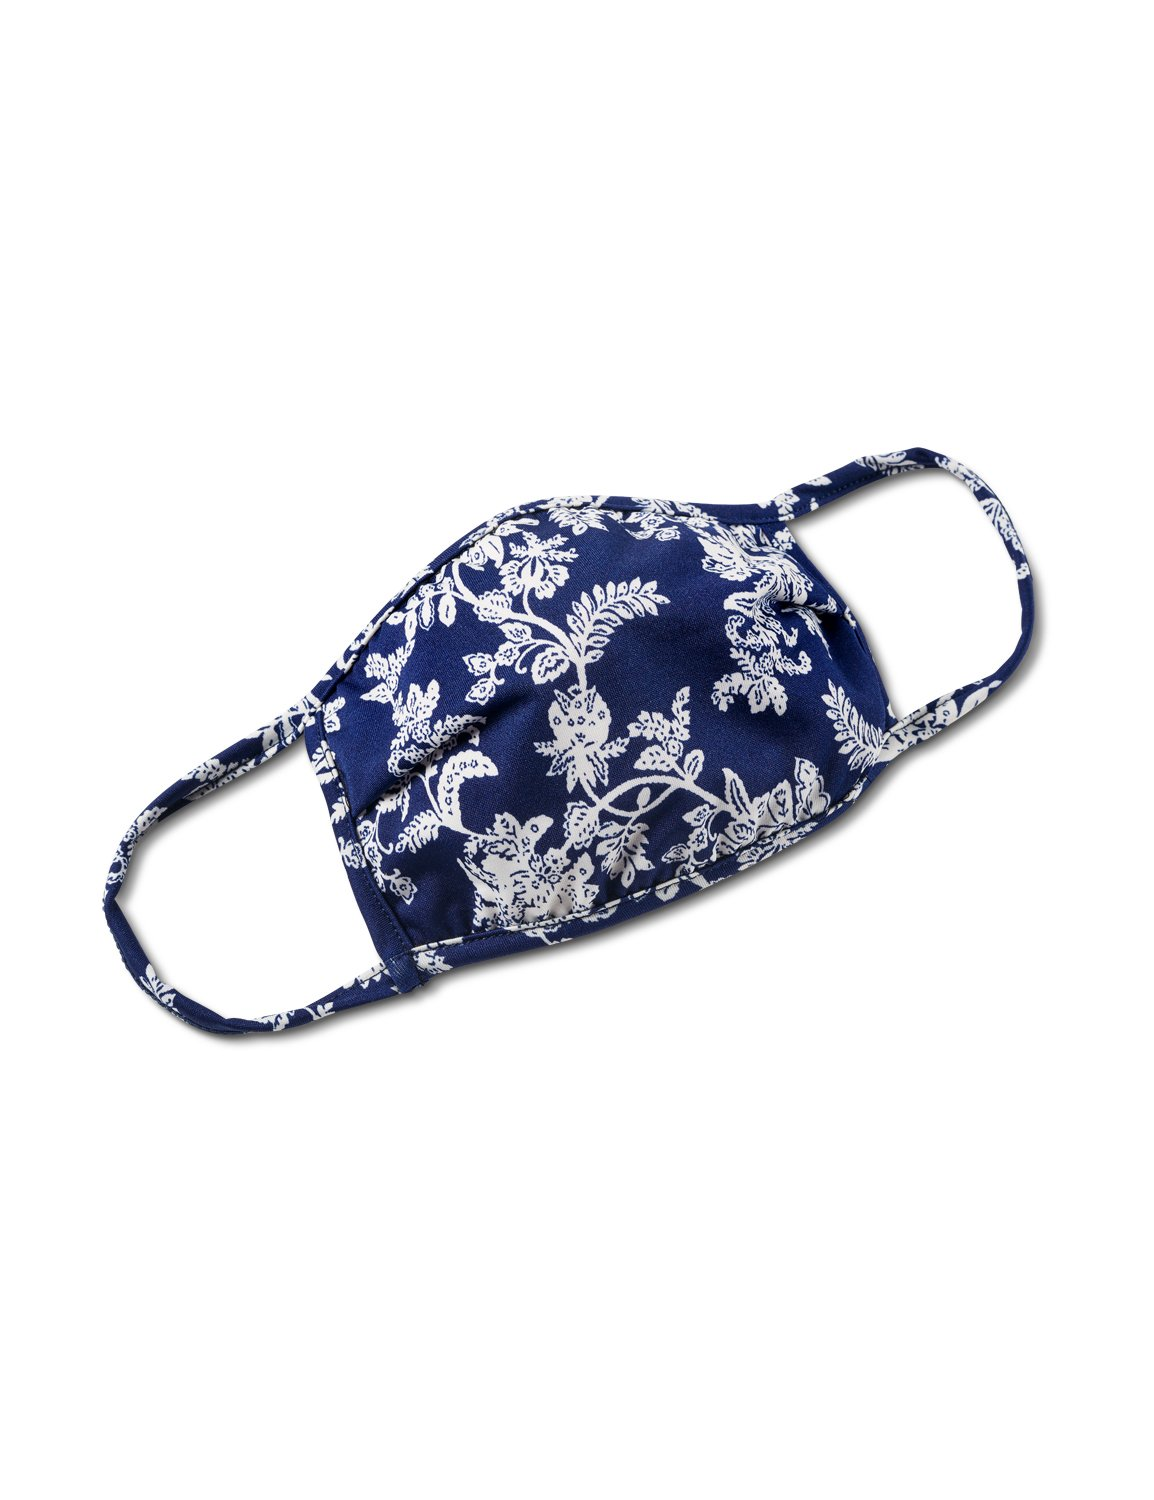 Floral Scroll Fashion Mask -Navy/White - Front